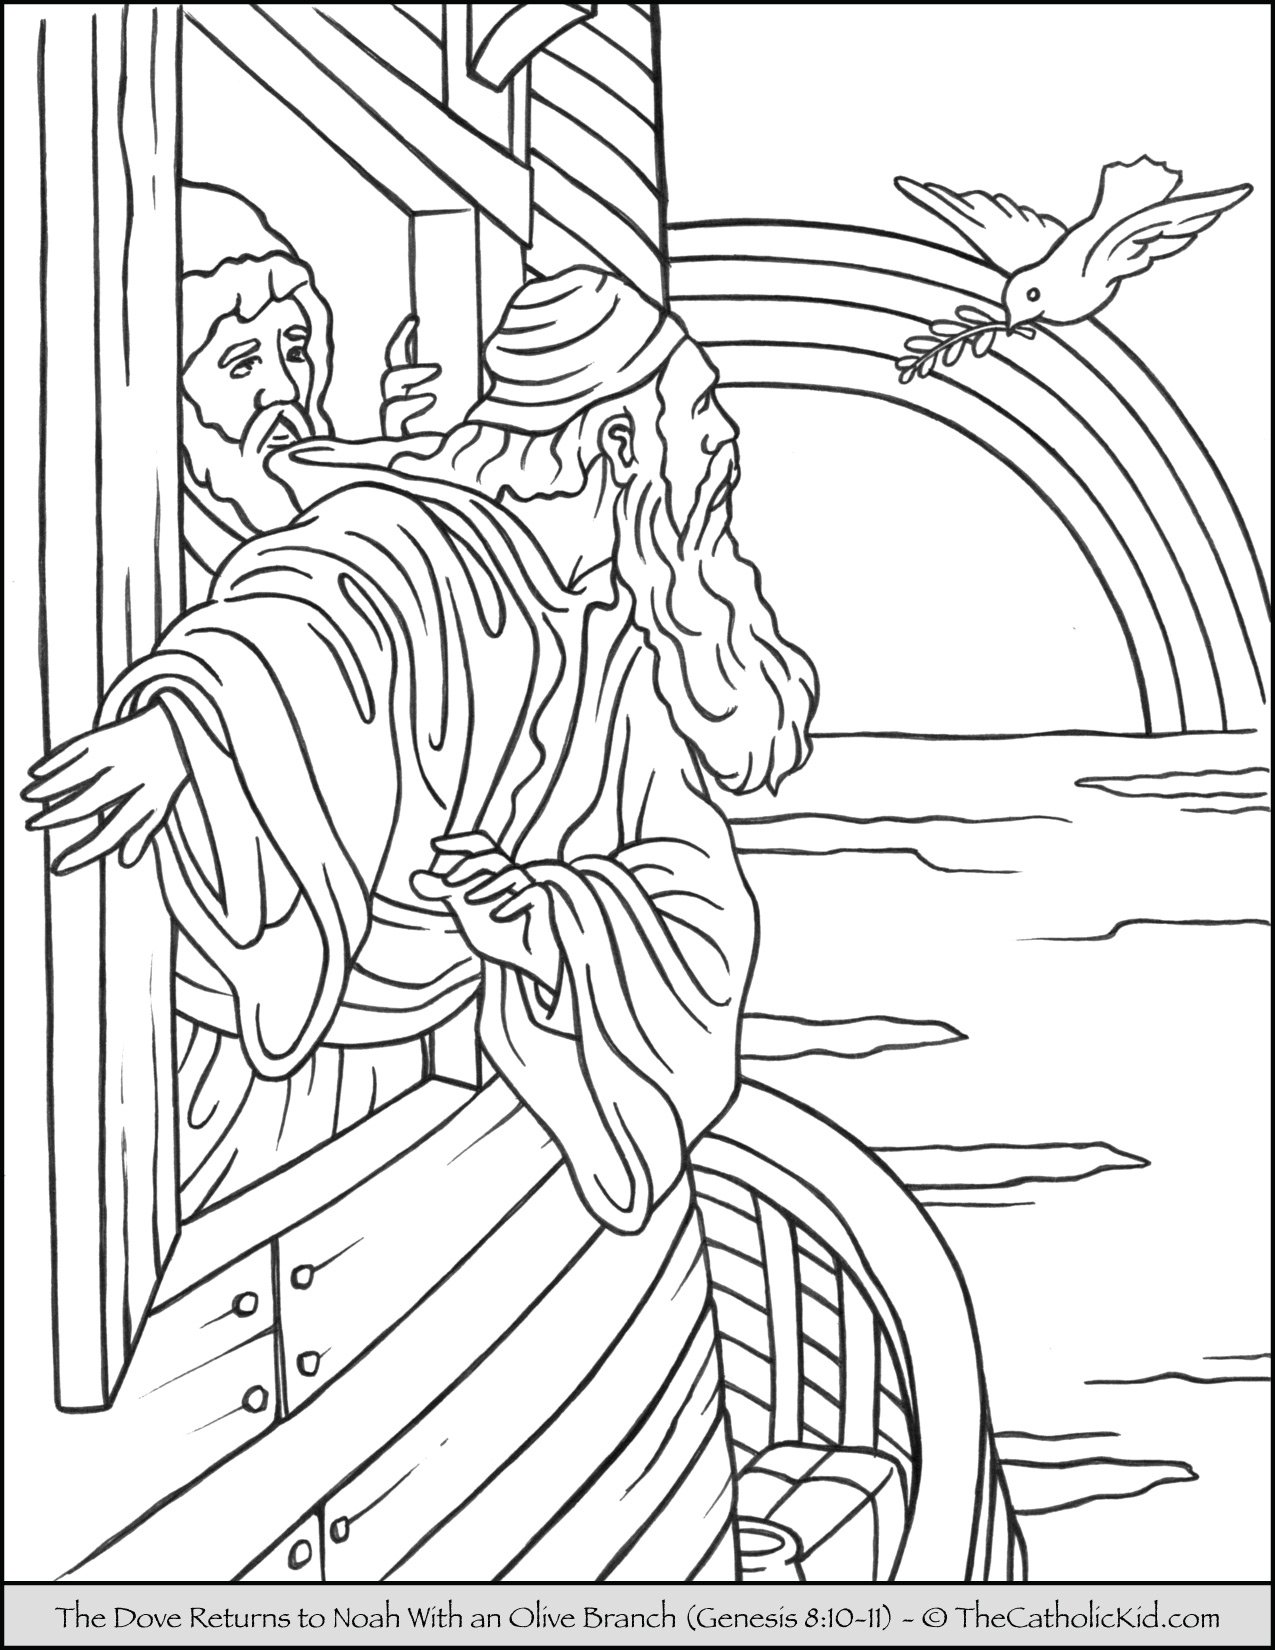 Noah Dove Olive Branch Coloring Page